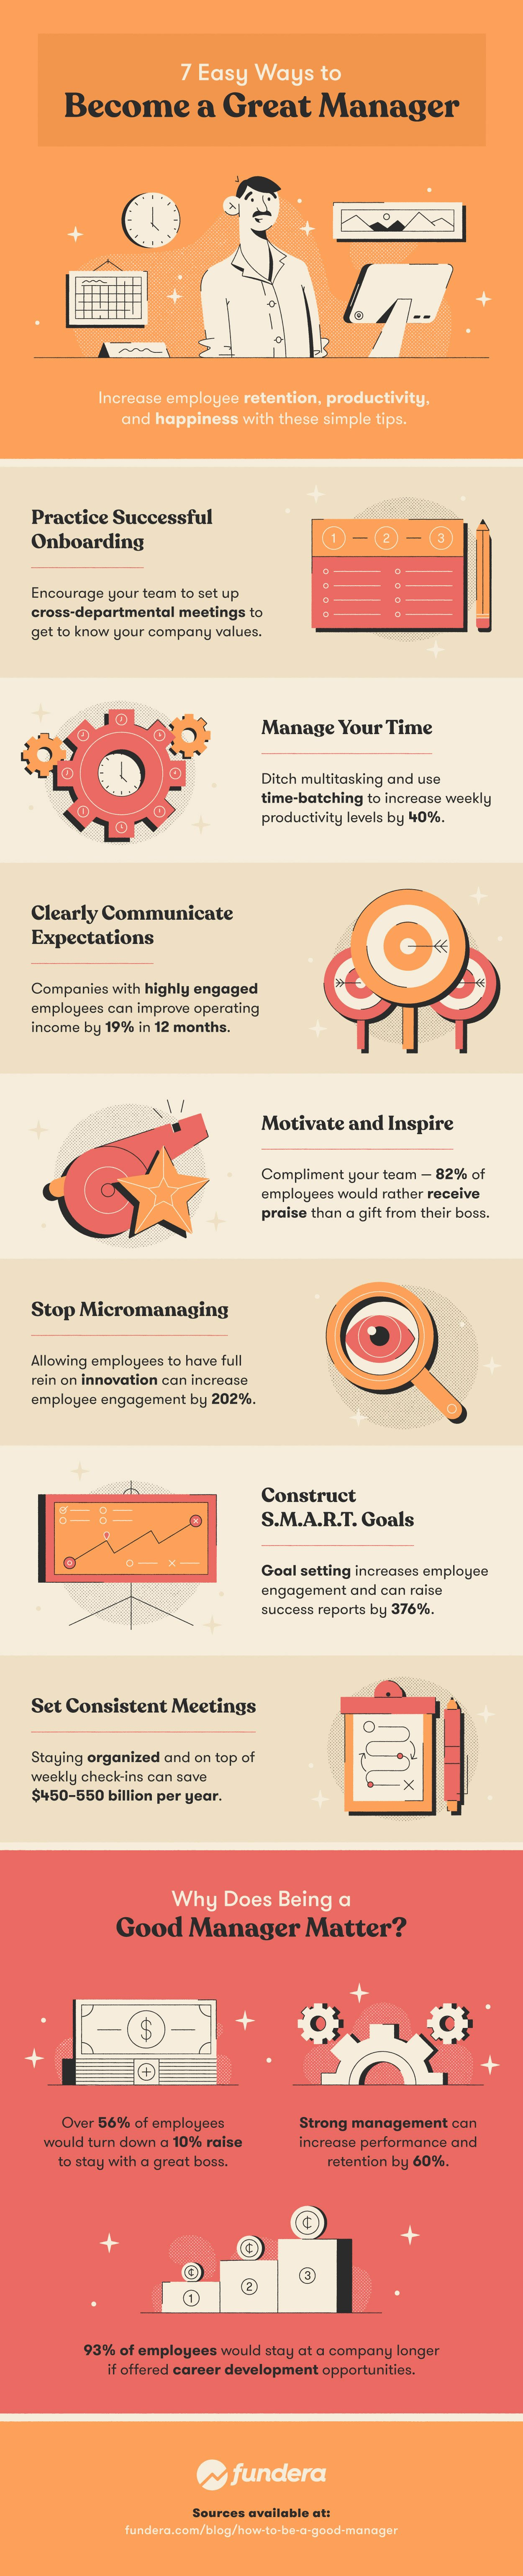 How to Be a Good Manager Infographic